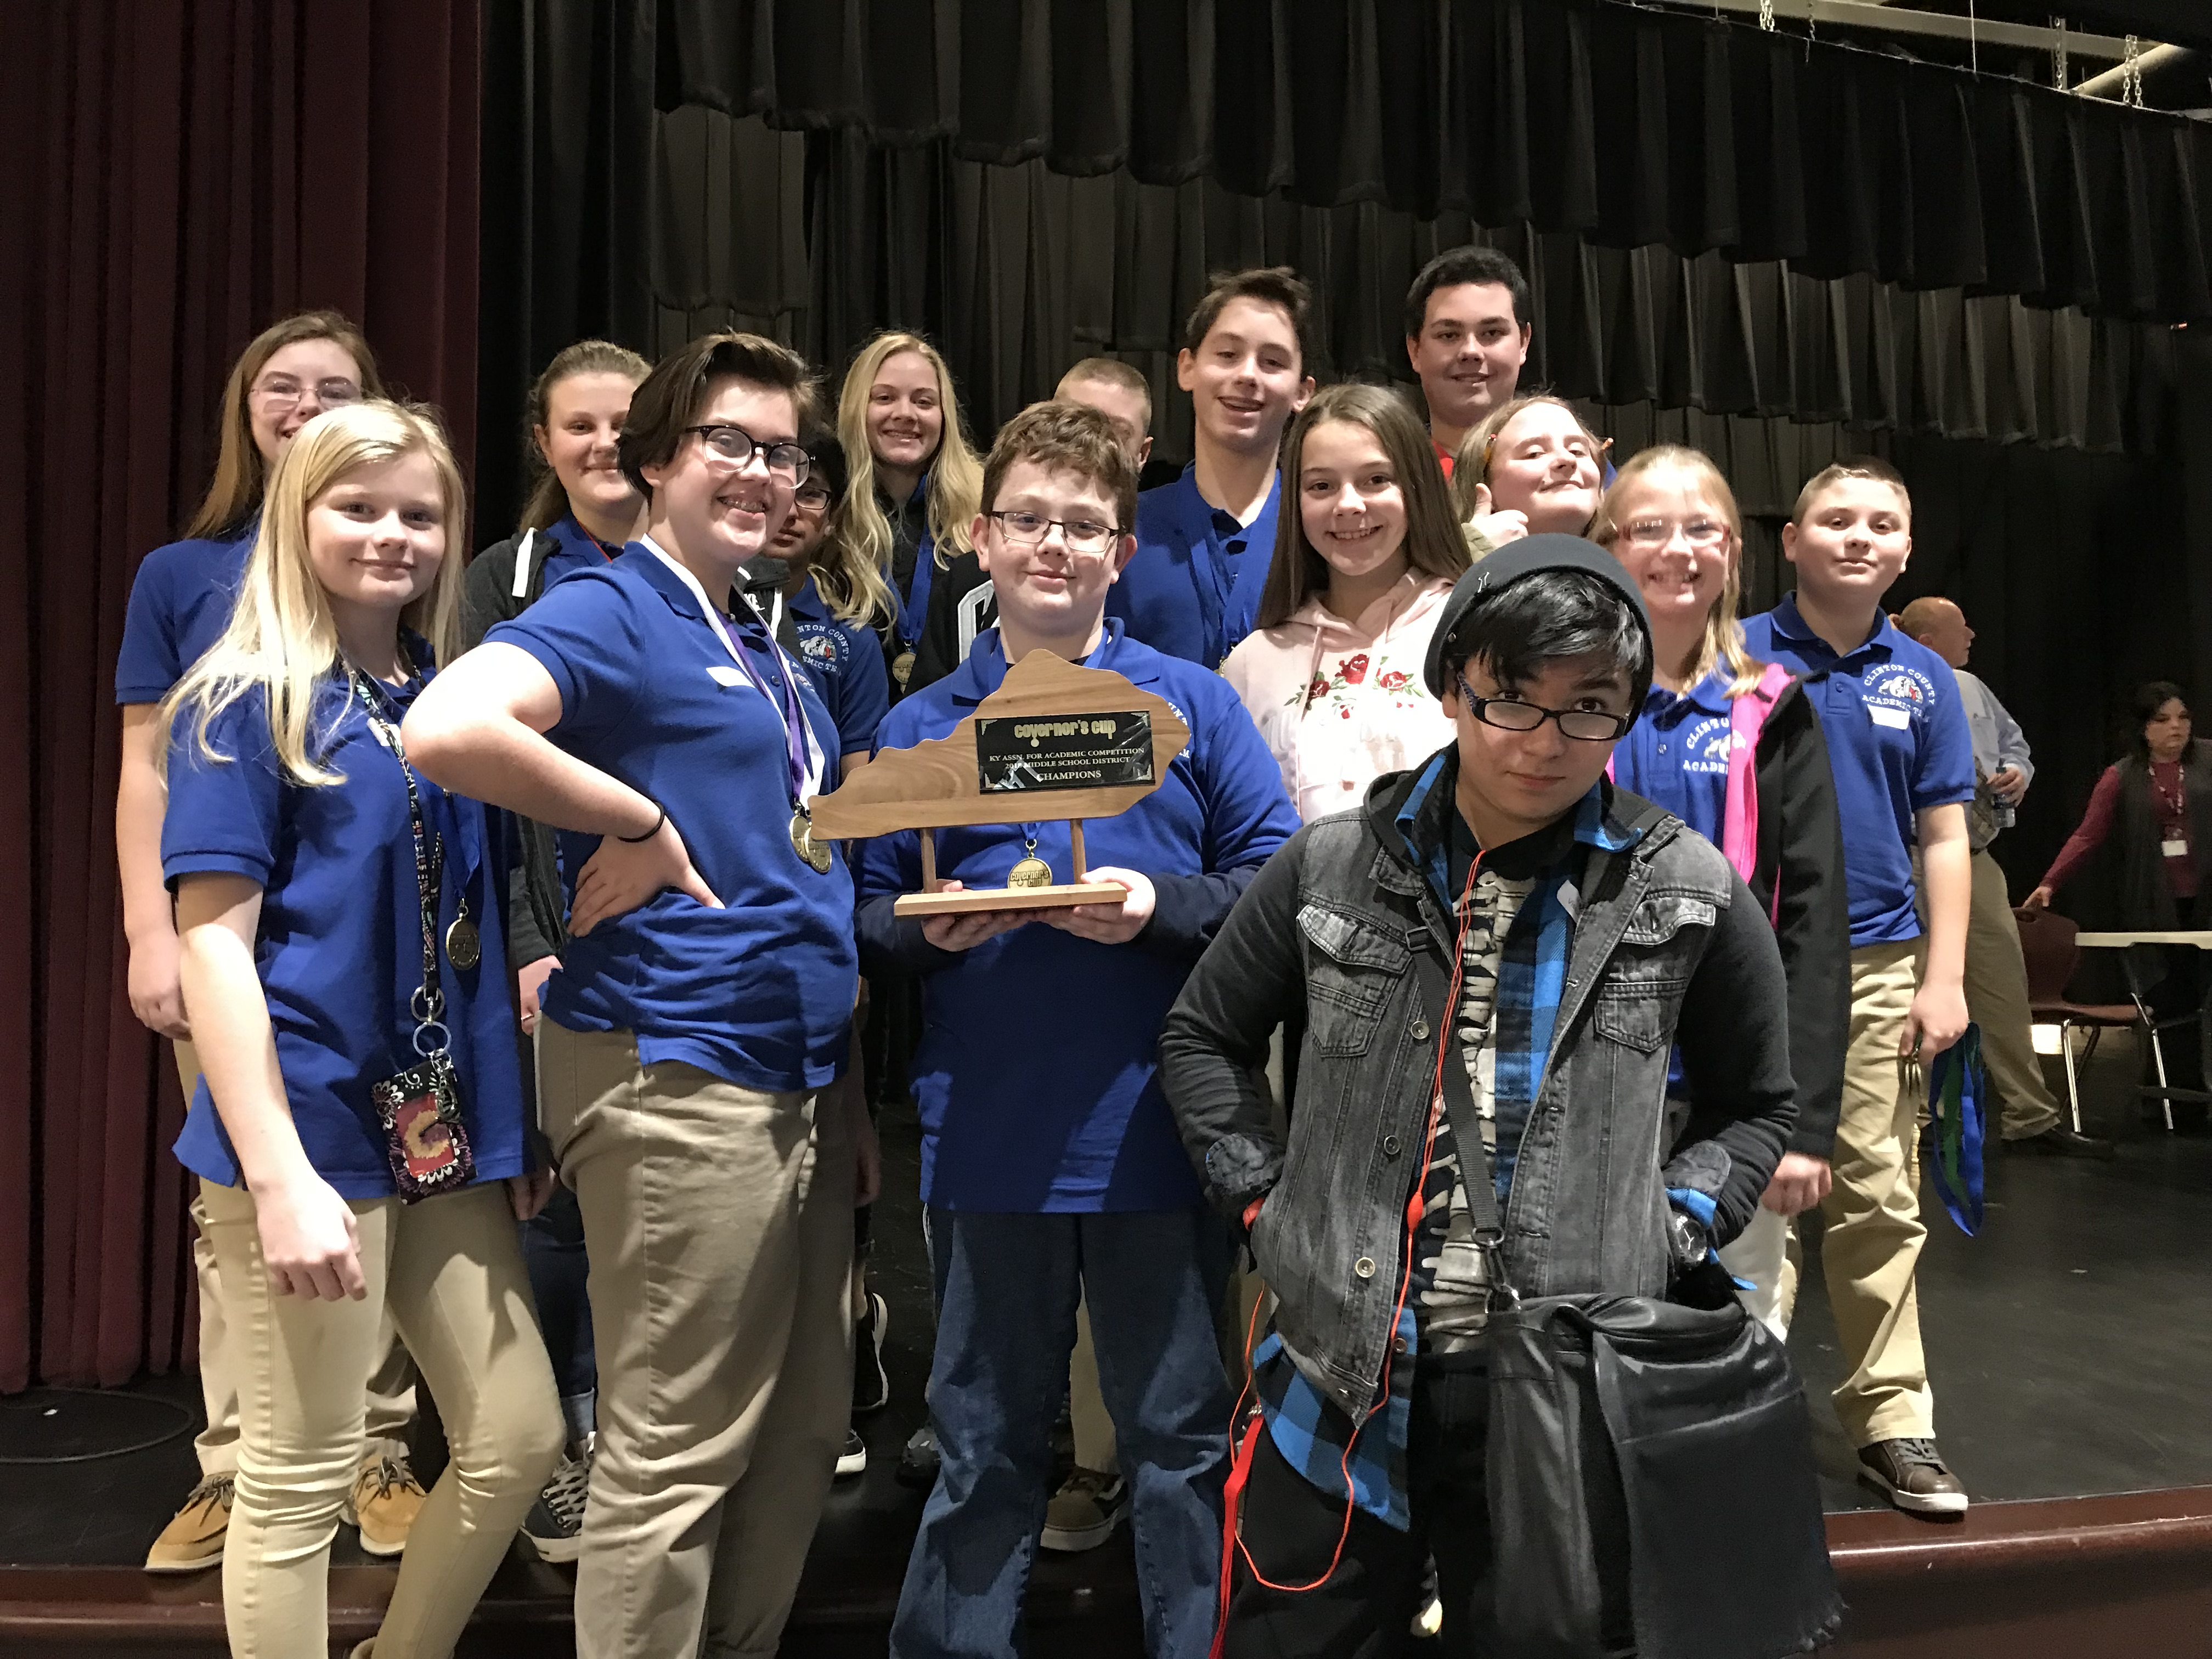 Congratulations to the Middle School Academic Team for winning the District 46 Middle School Governor's Cup Competition!